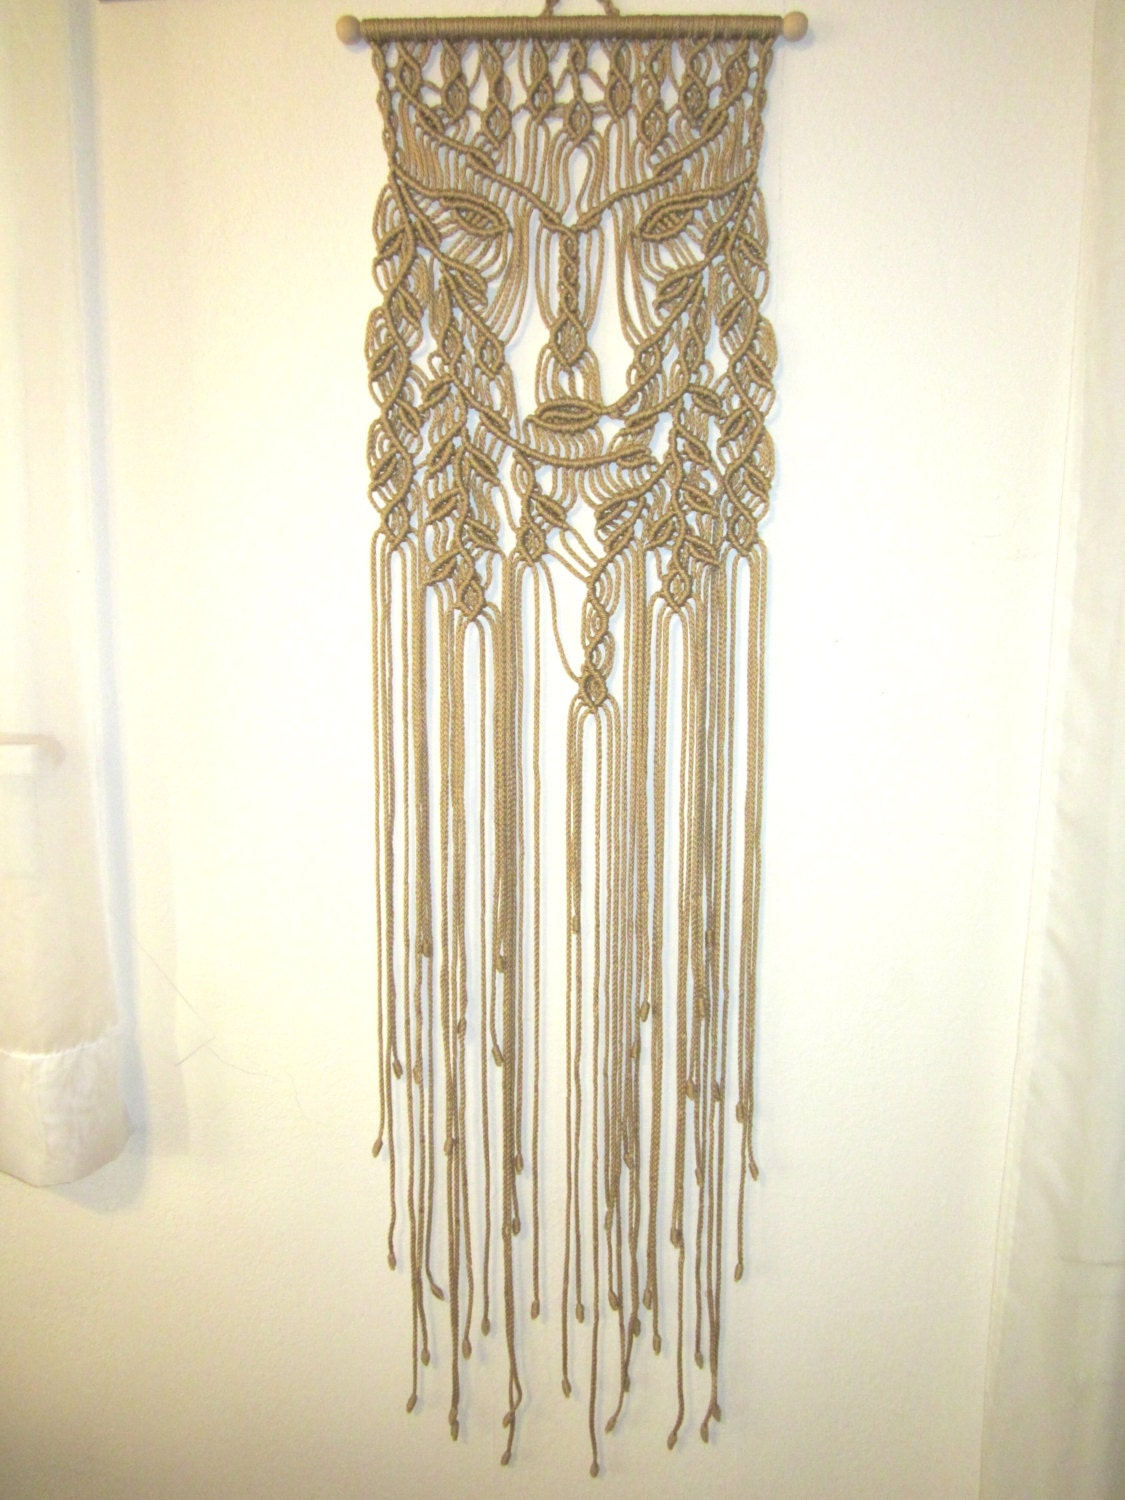 Macrame wall hanging dryad handmade macrame home decor for Home made decorative items